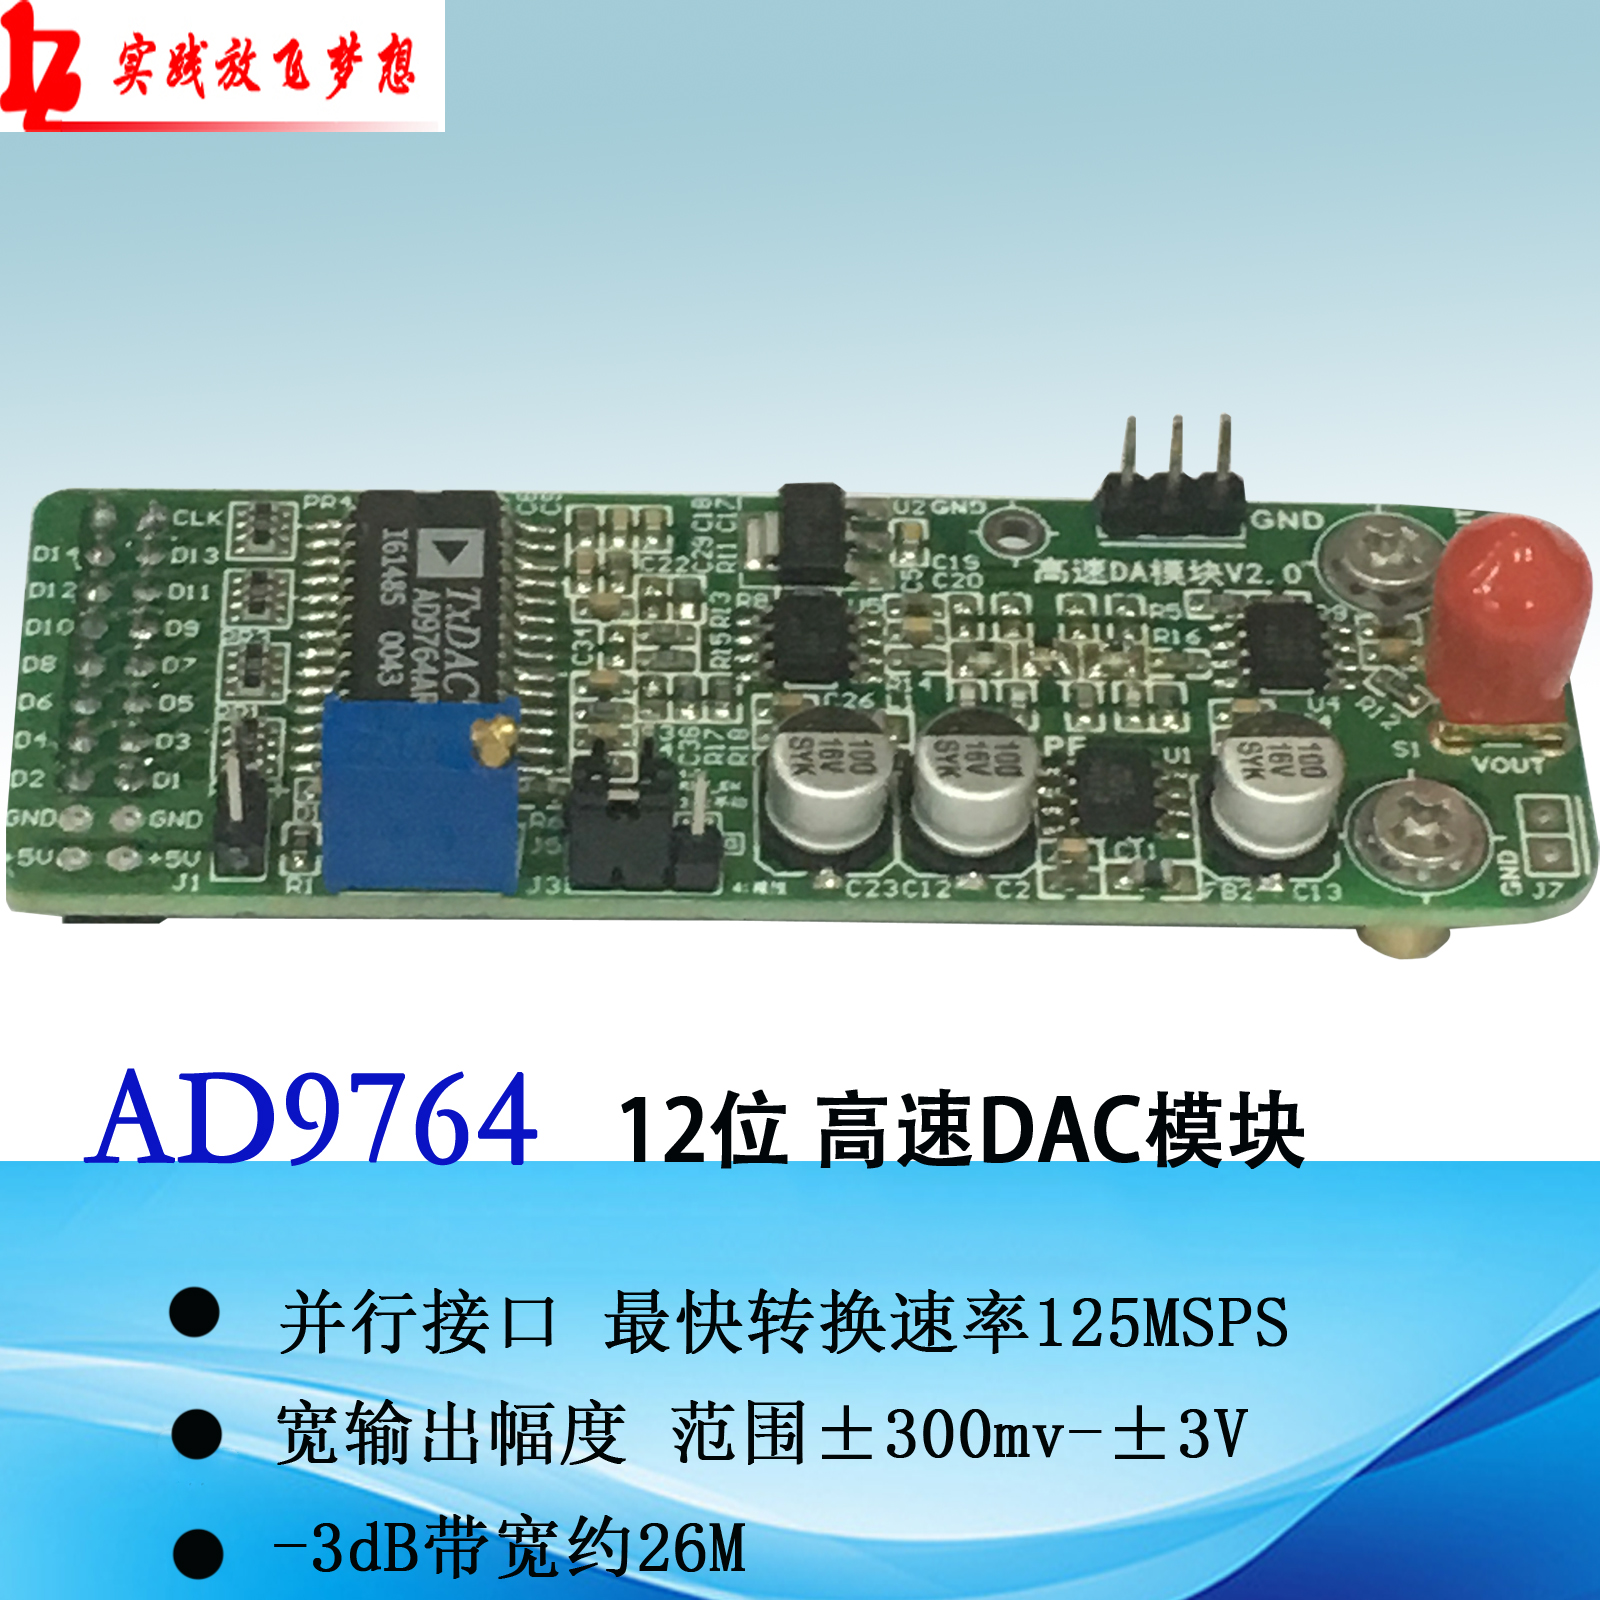 High Speed DA AD9764 Module 14 Bit Parallel DA 125M Waveform Generation FPGA Development Board SupportingHigh Speed DA AD9764 Module 14 Bit Parallel DA 125M Waveform Generation FPGA Development Board Supporting